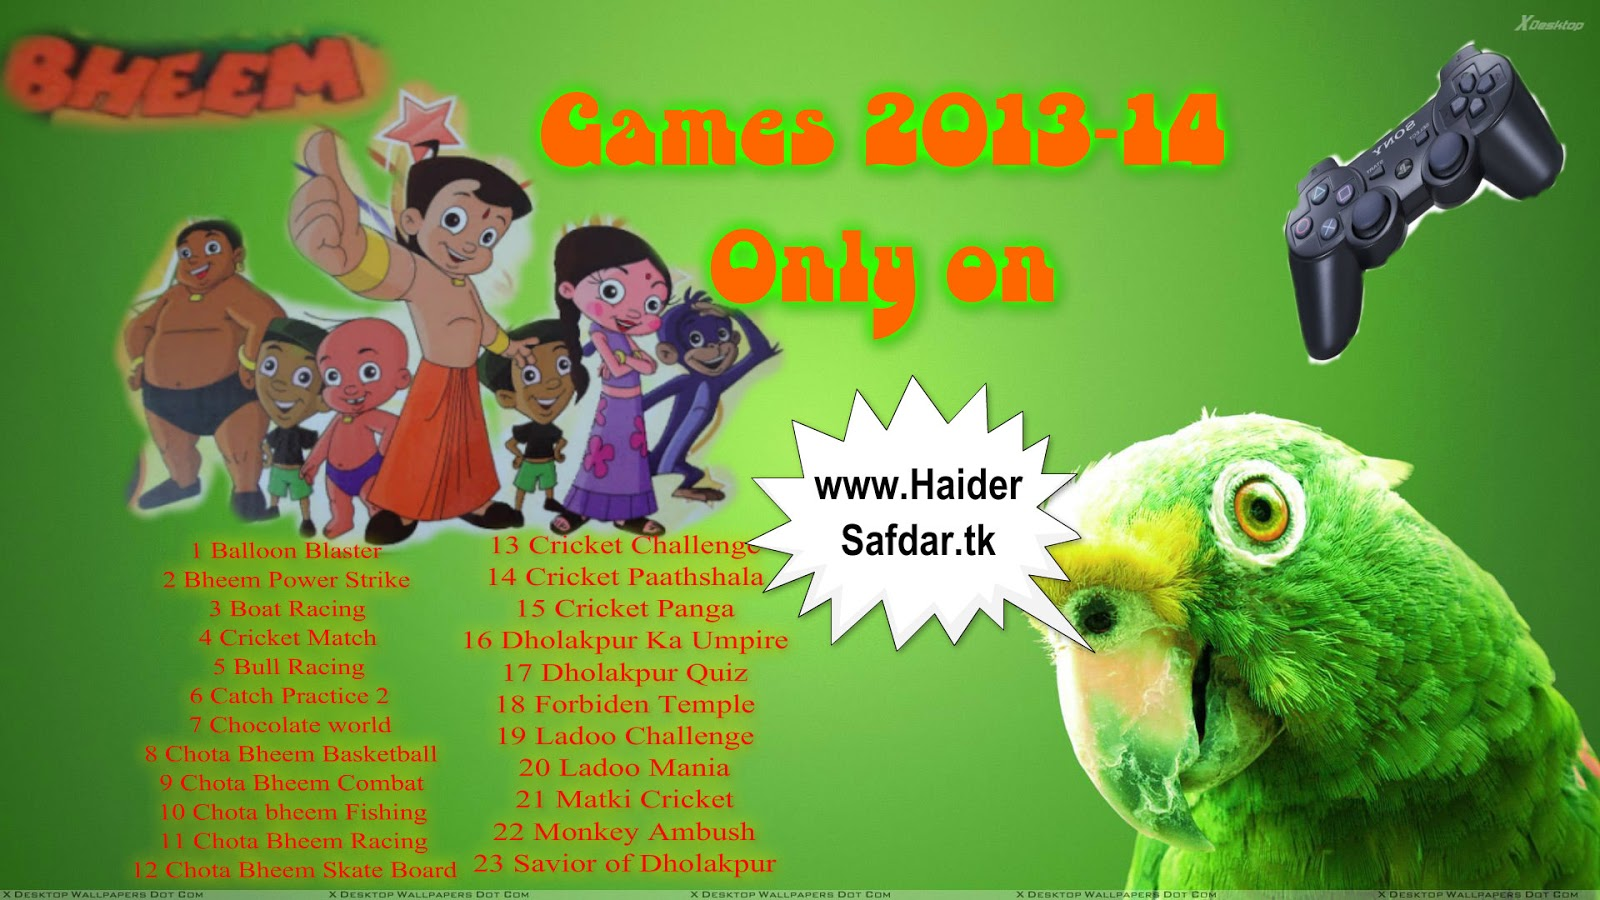 Chota bheem games online play 2012